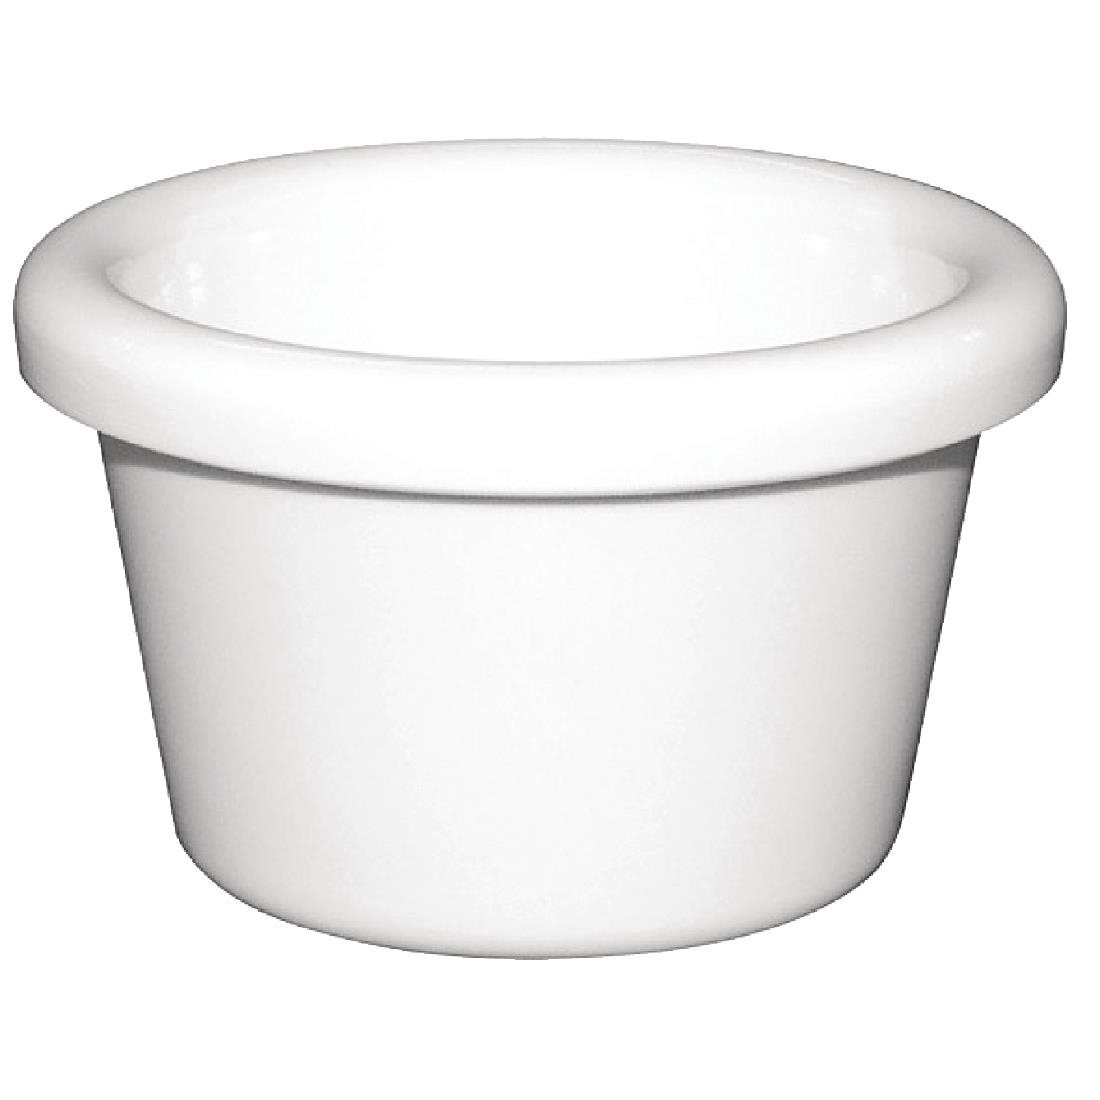 Smooth Ramekin - White